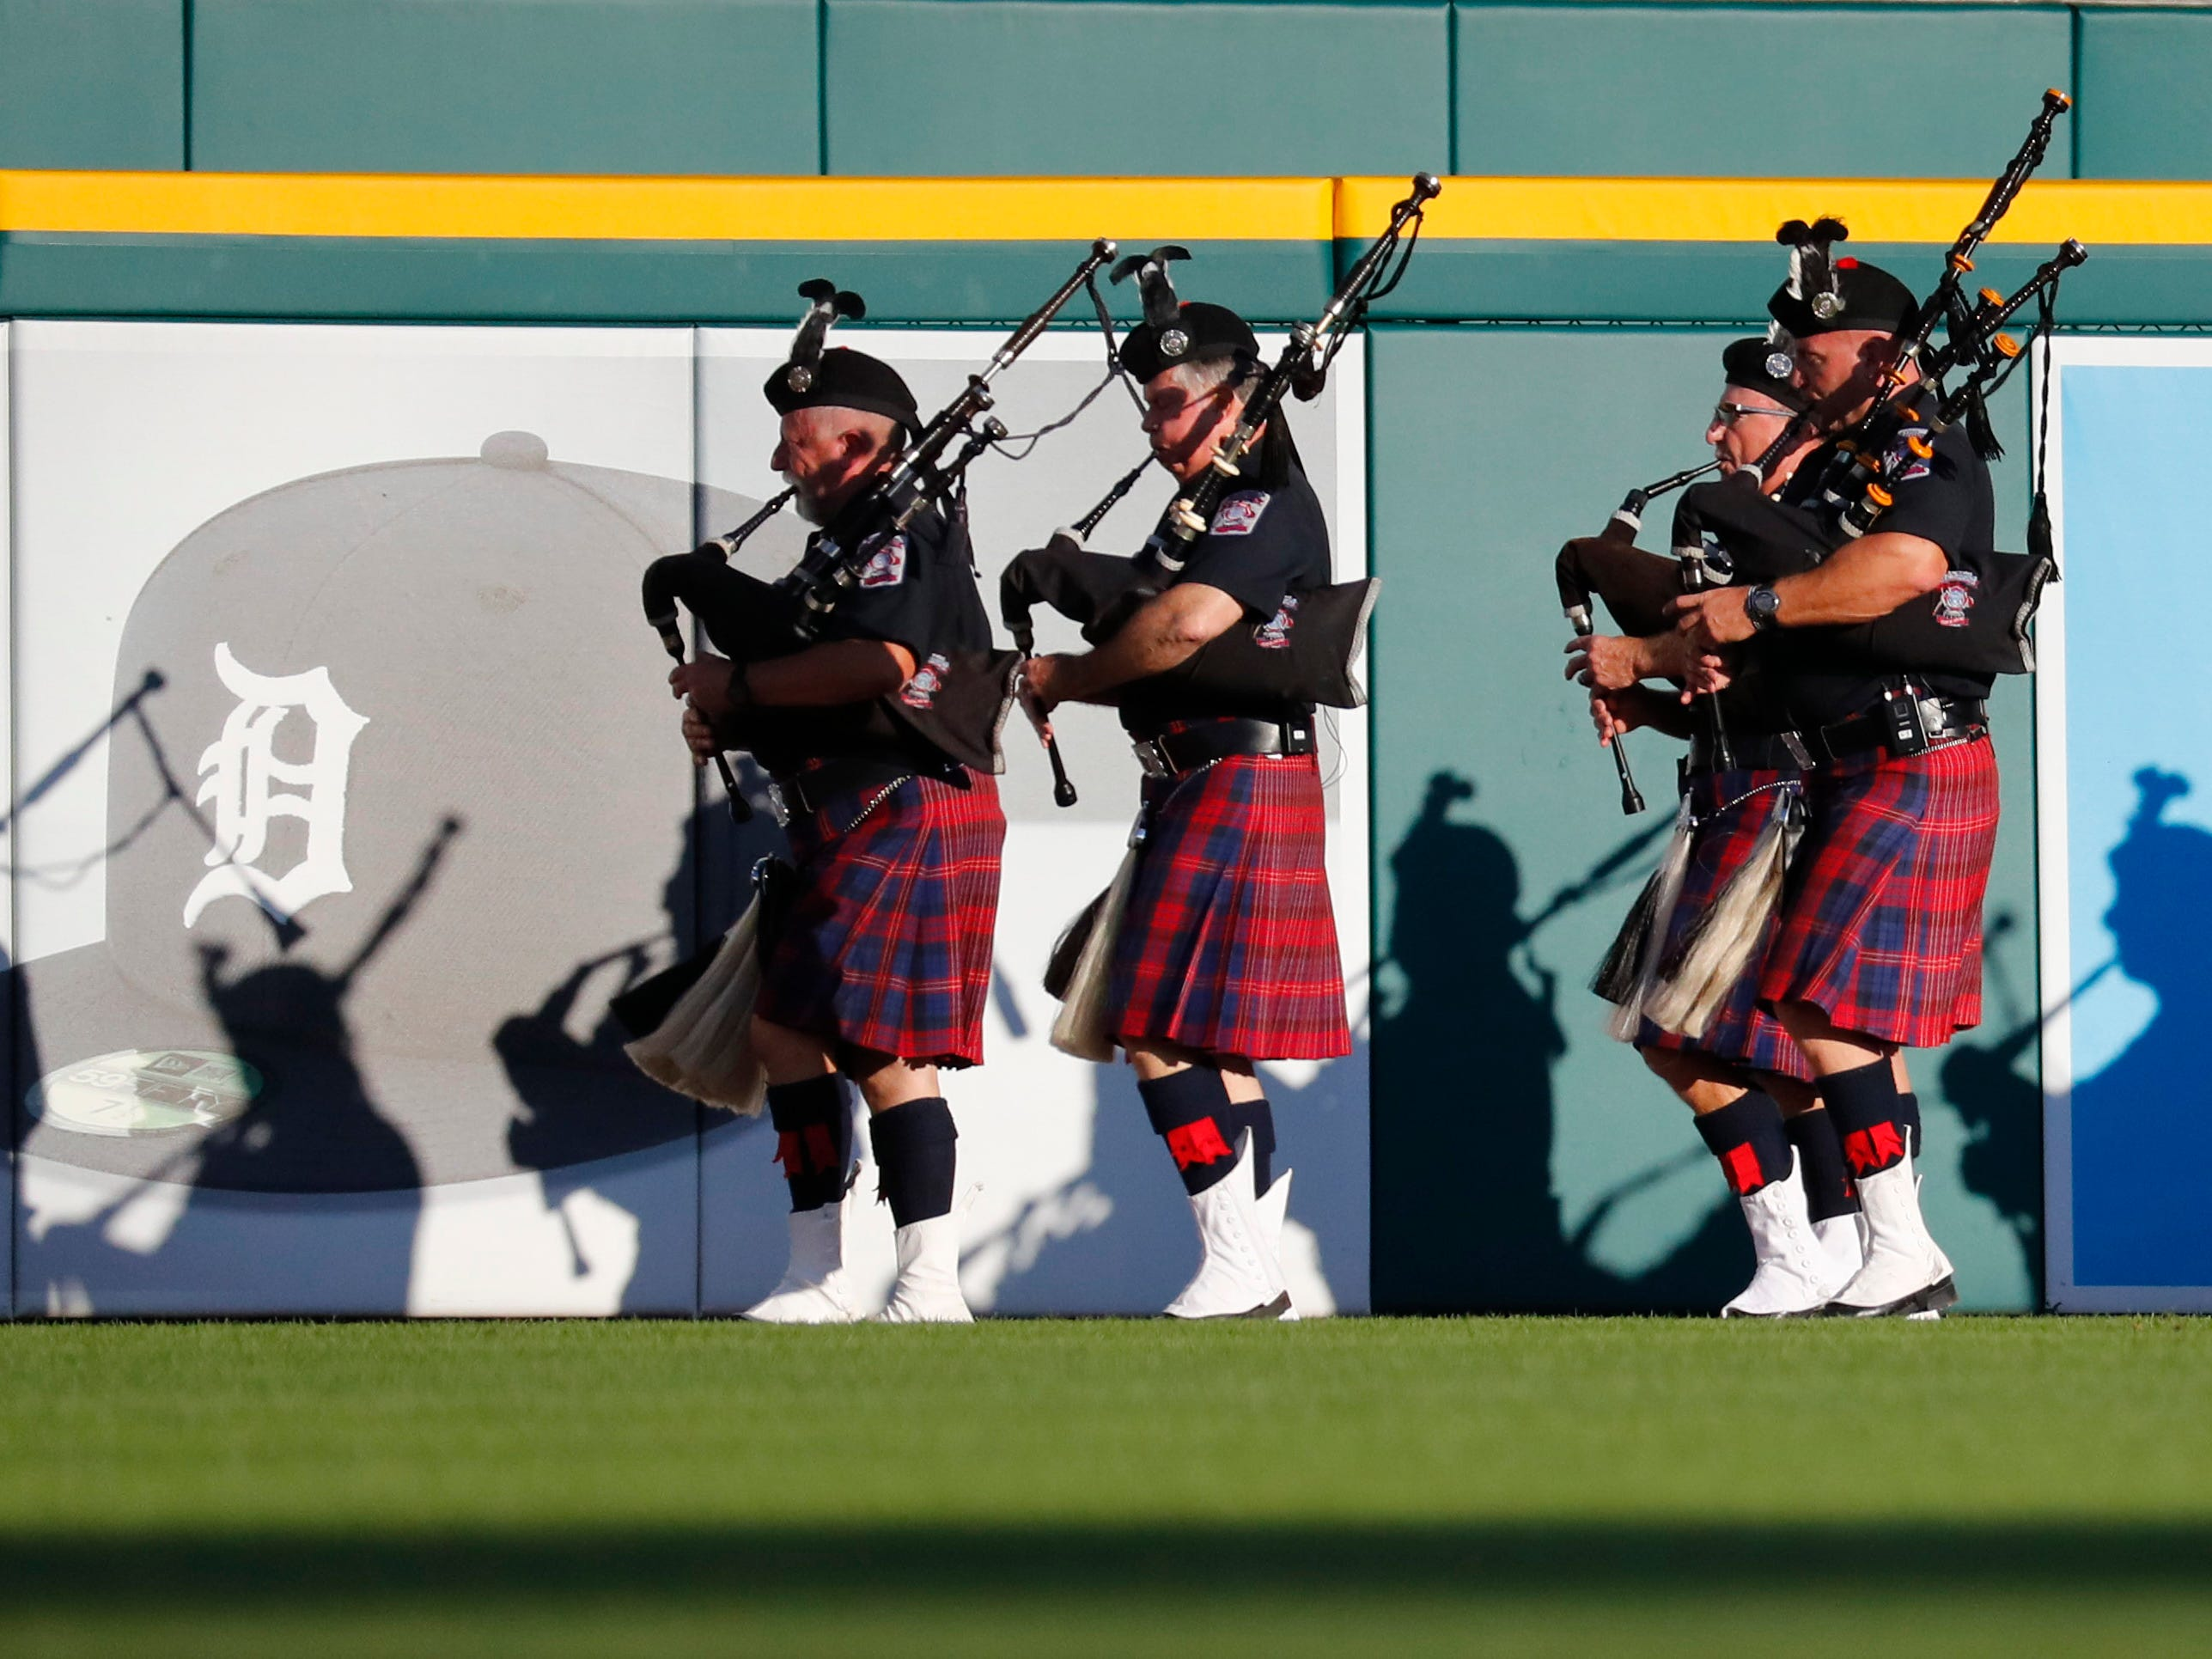 Metro Detroit Pipes and Drums perform at Comerica Park.